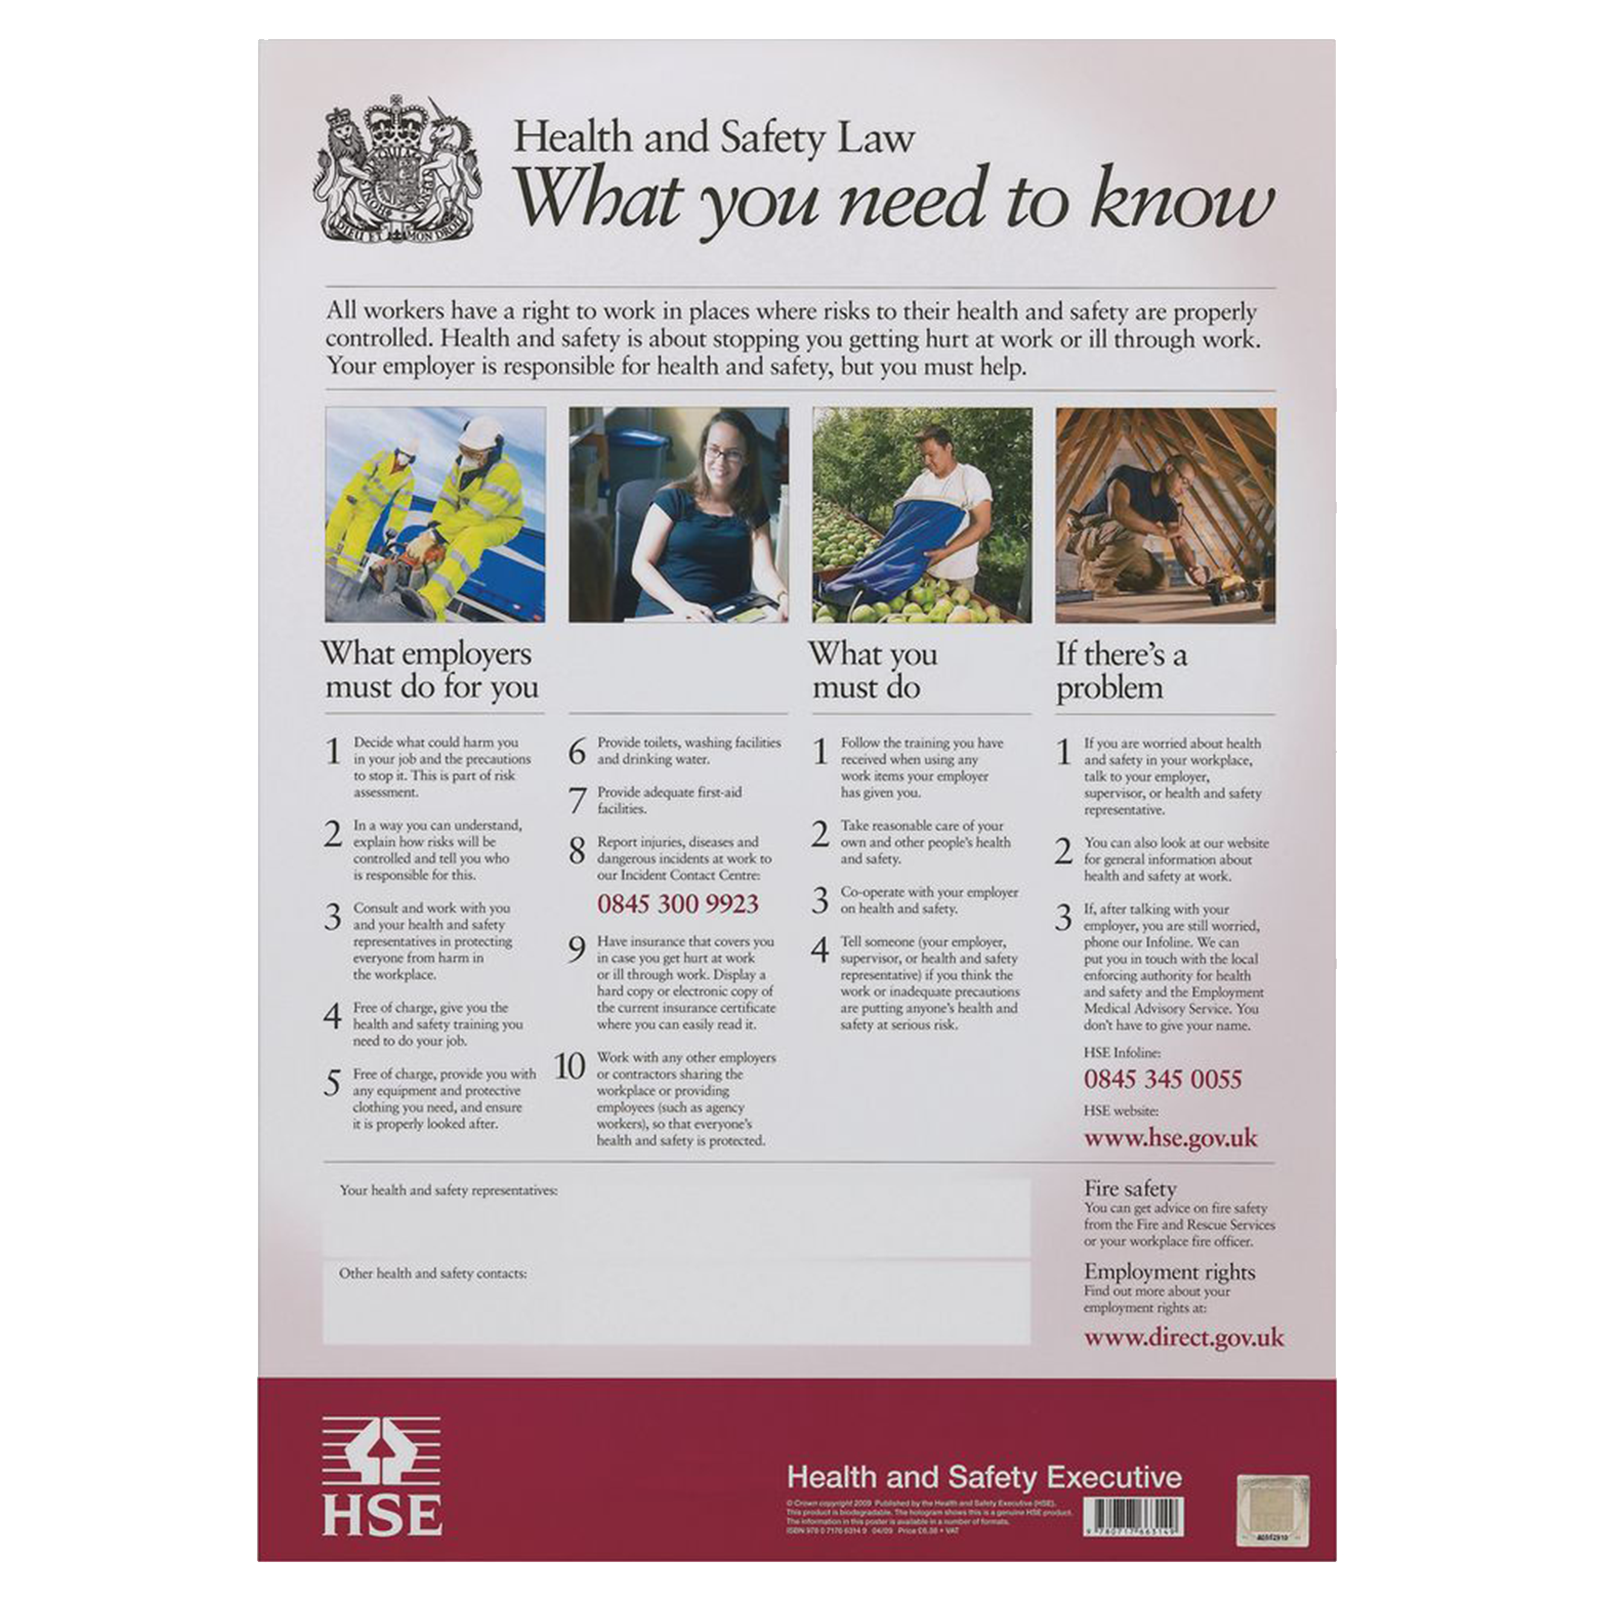 A3 size HSE UK Health and Safety Law Poster